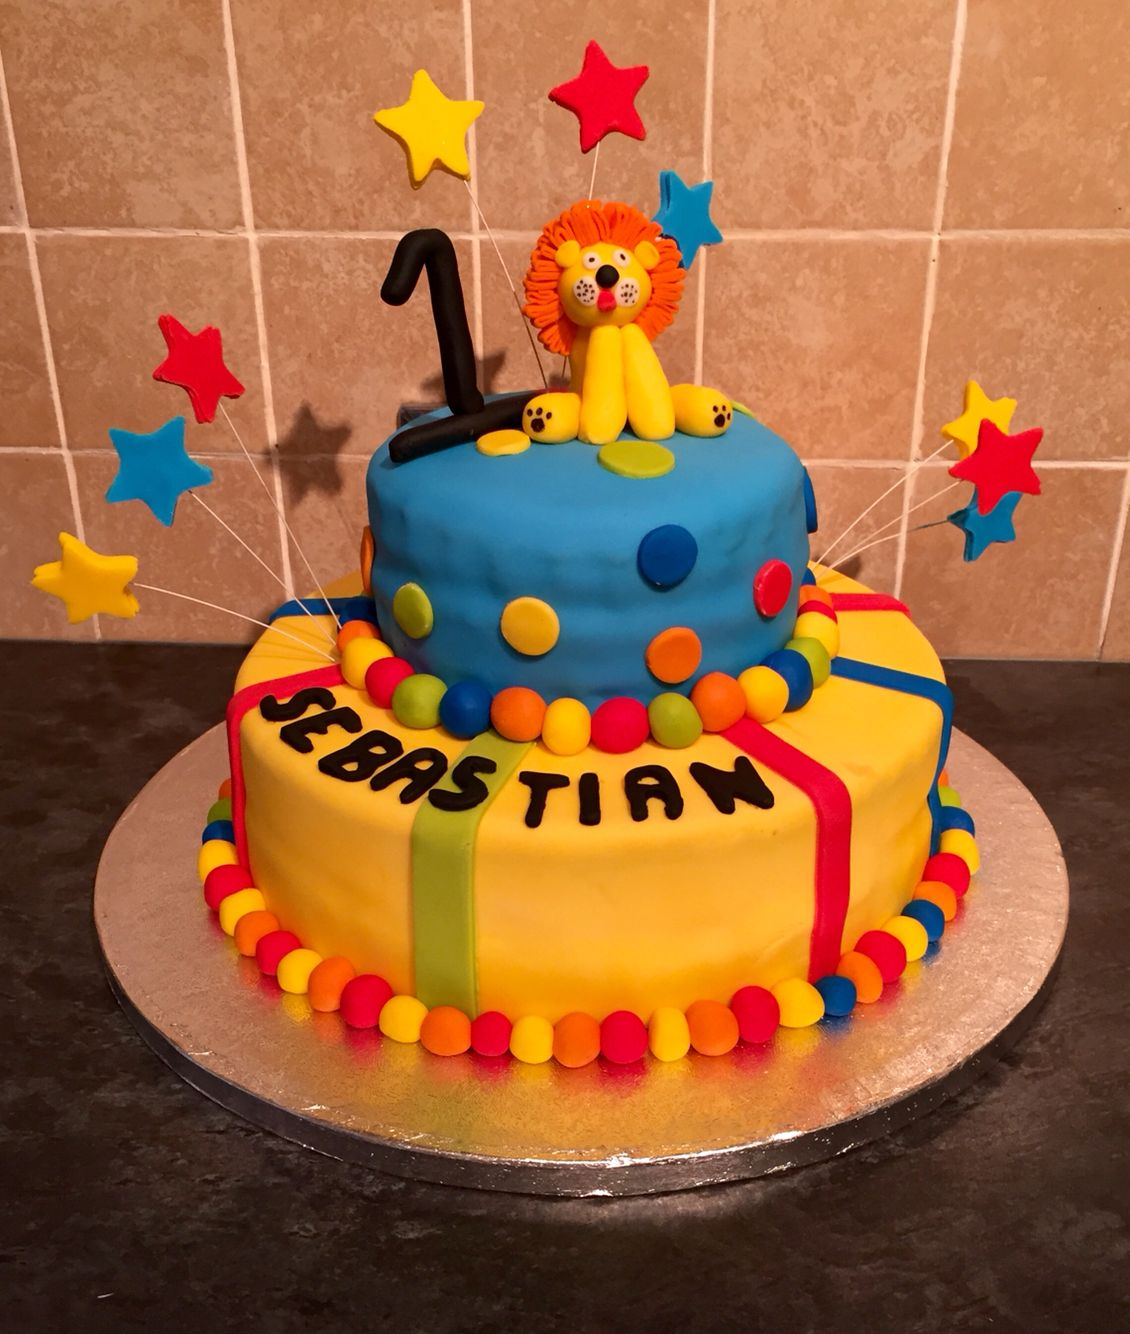 Still learning, Again so many errors that could have been corrected the time! #birthday cake #colourful